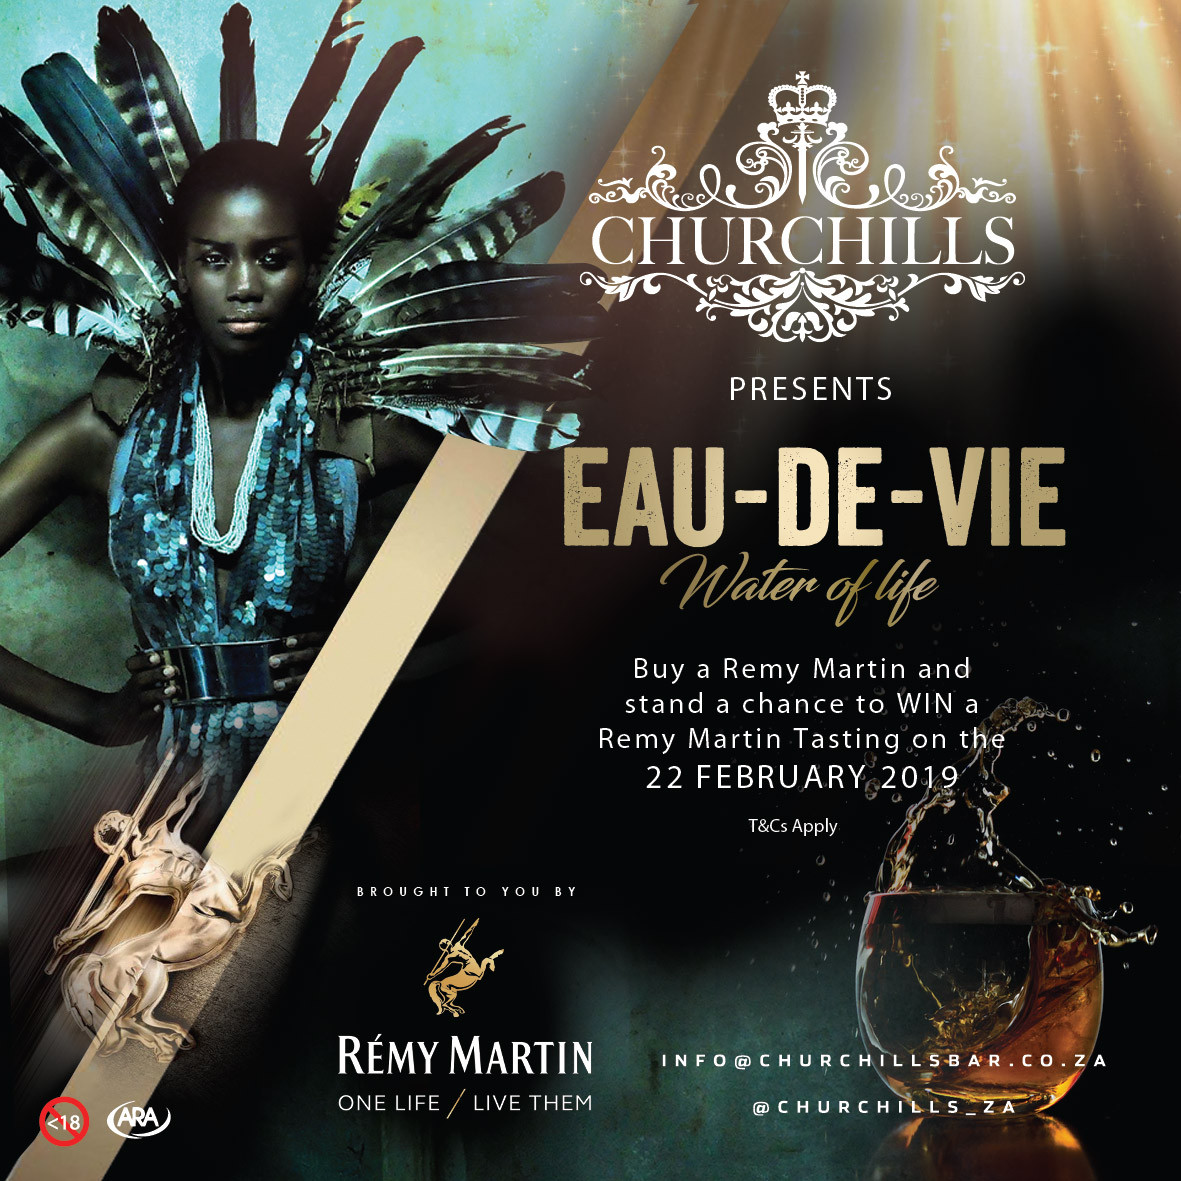 Churchills presents Eau-de-Vie